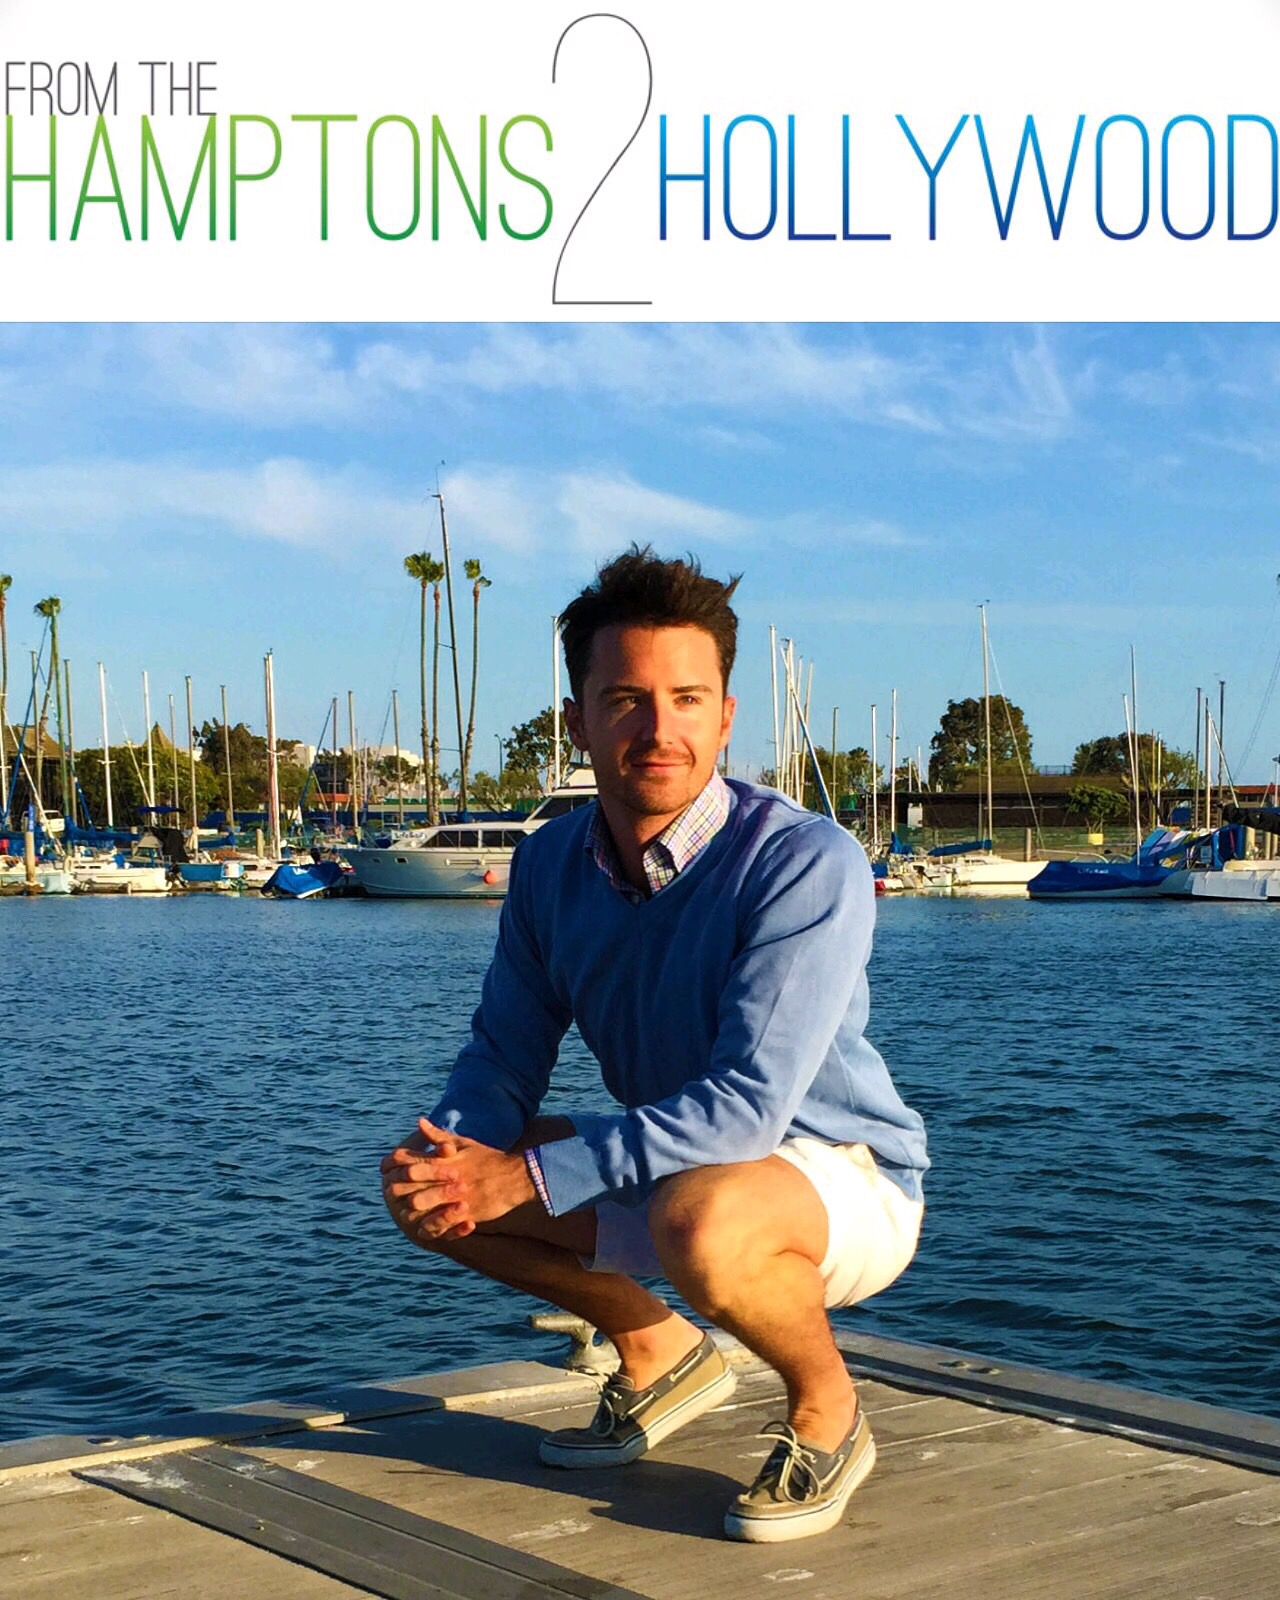 Hamptons to Hollywood Interview - Kyle Langan